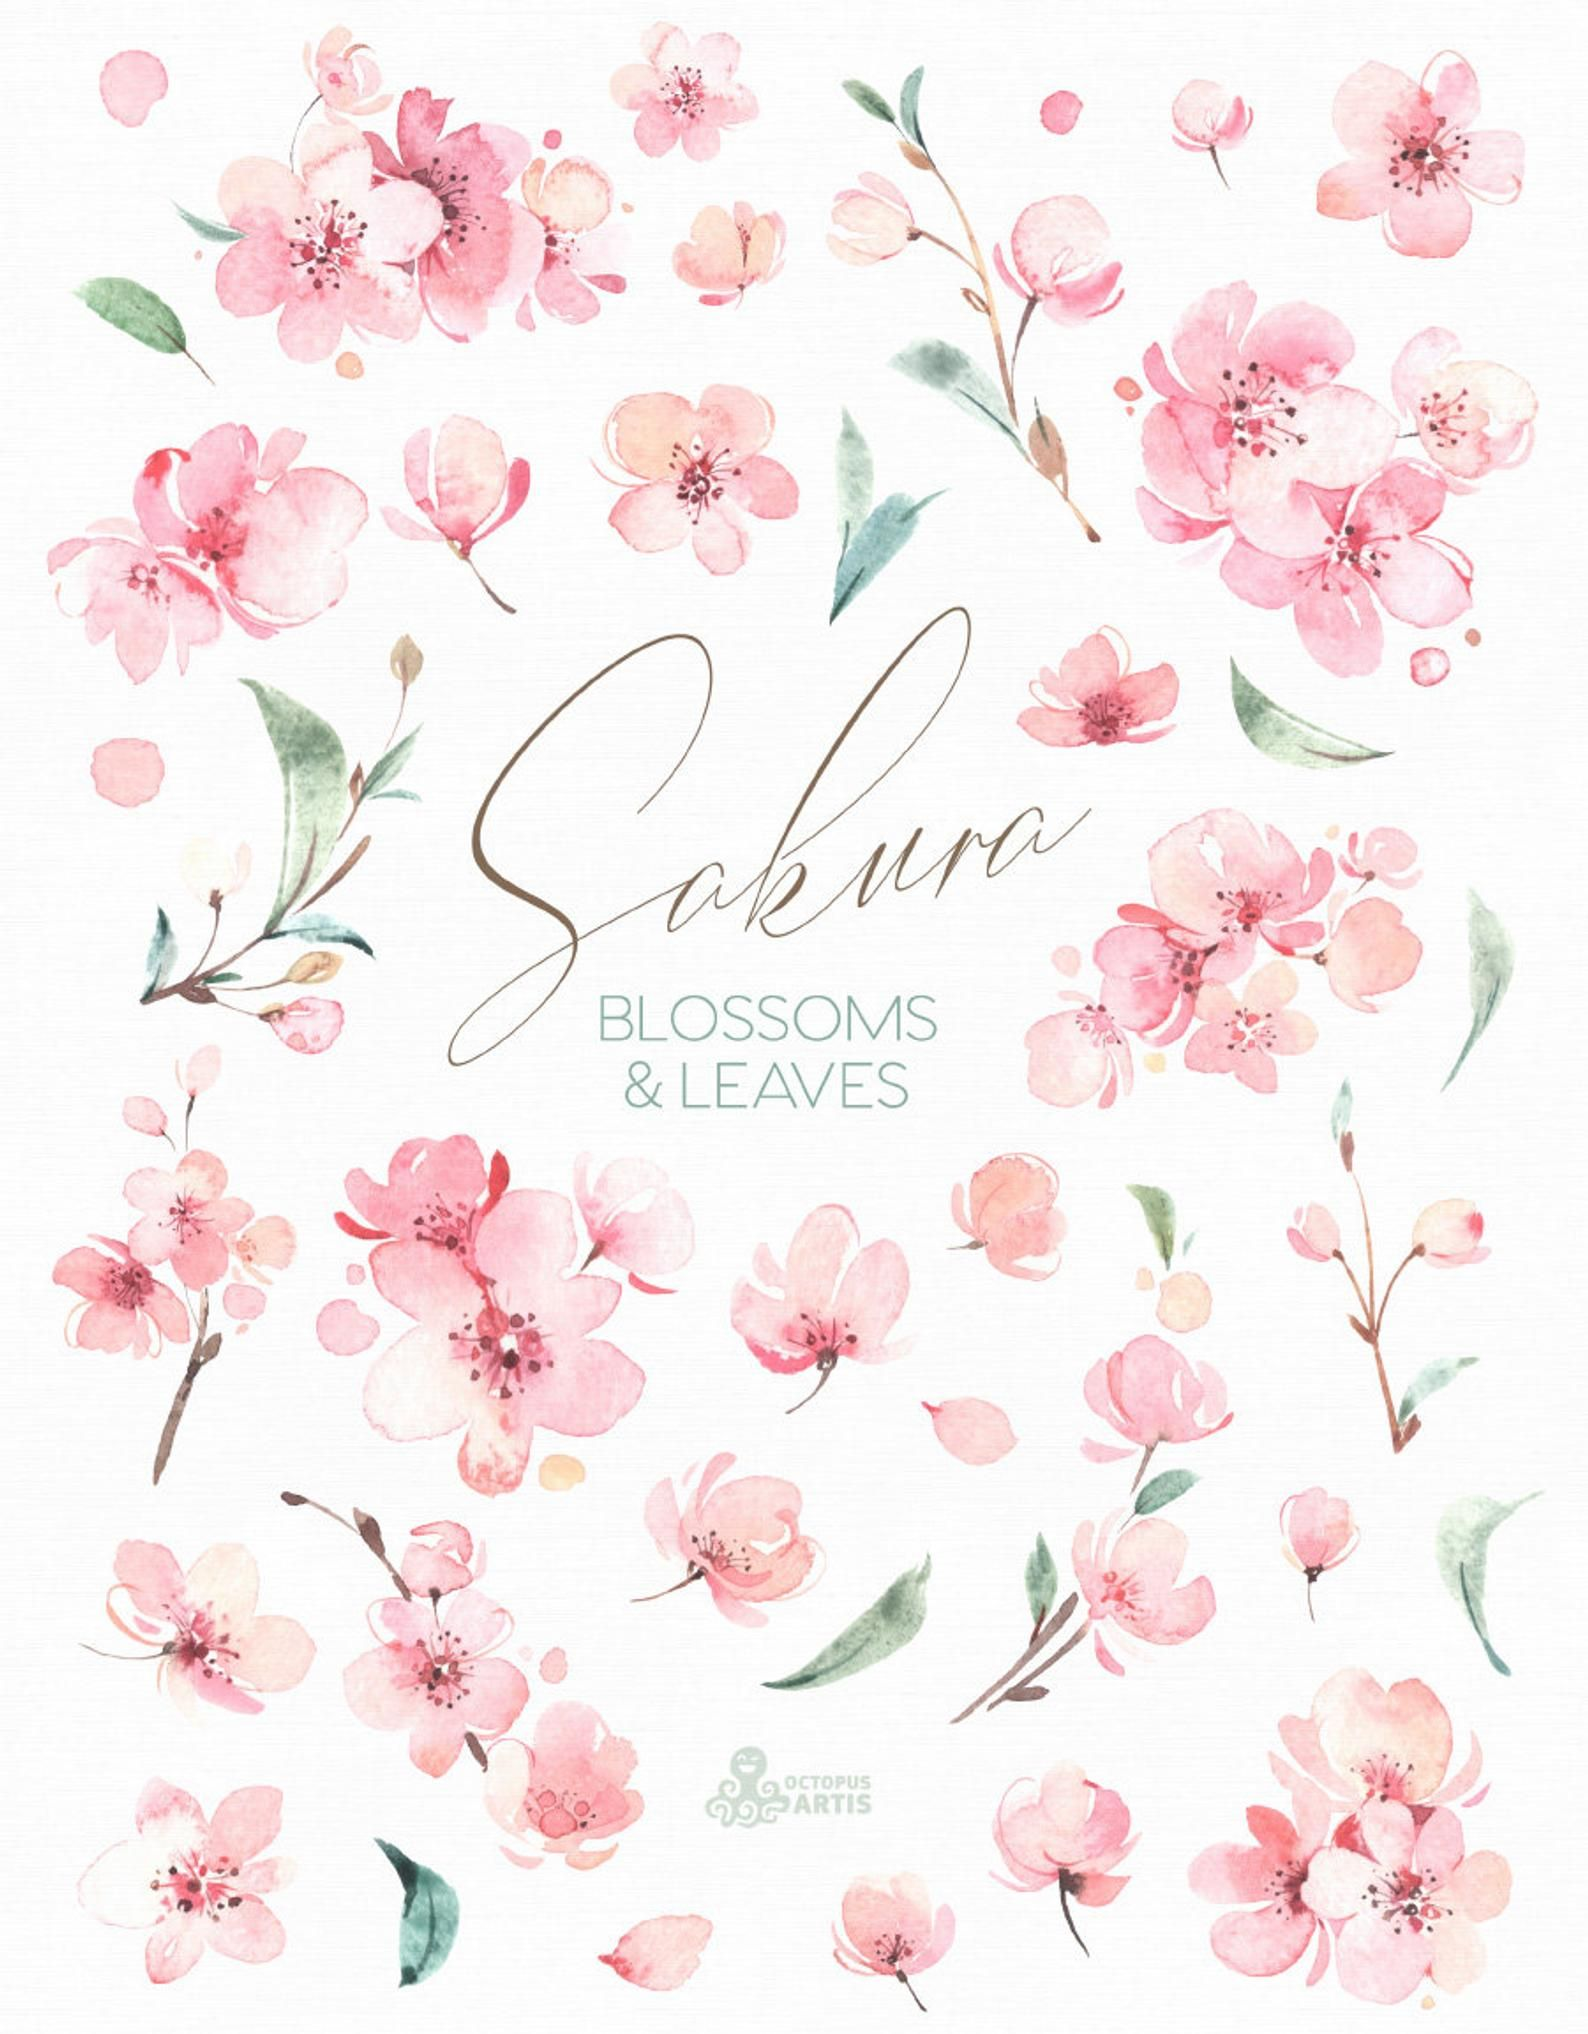 Sakura Blossoms Leaves Watercolor Floral Clipart Cherry Fresh